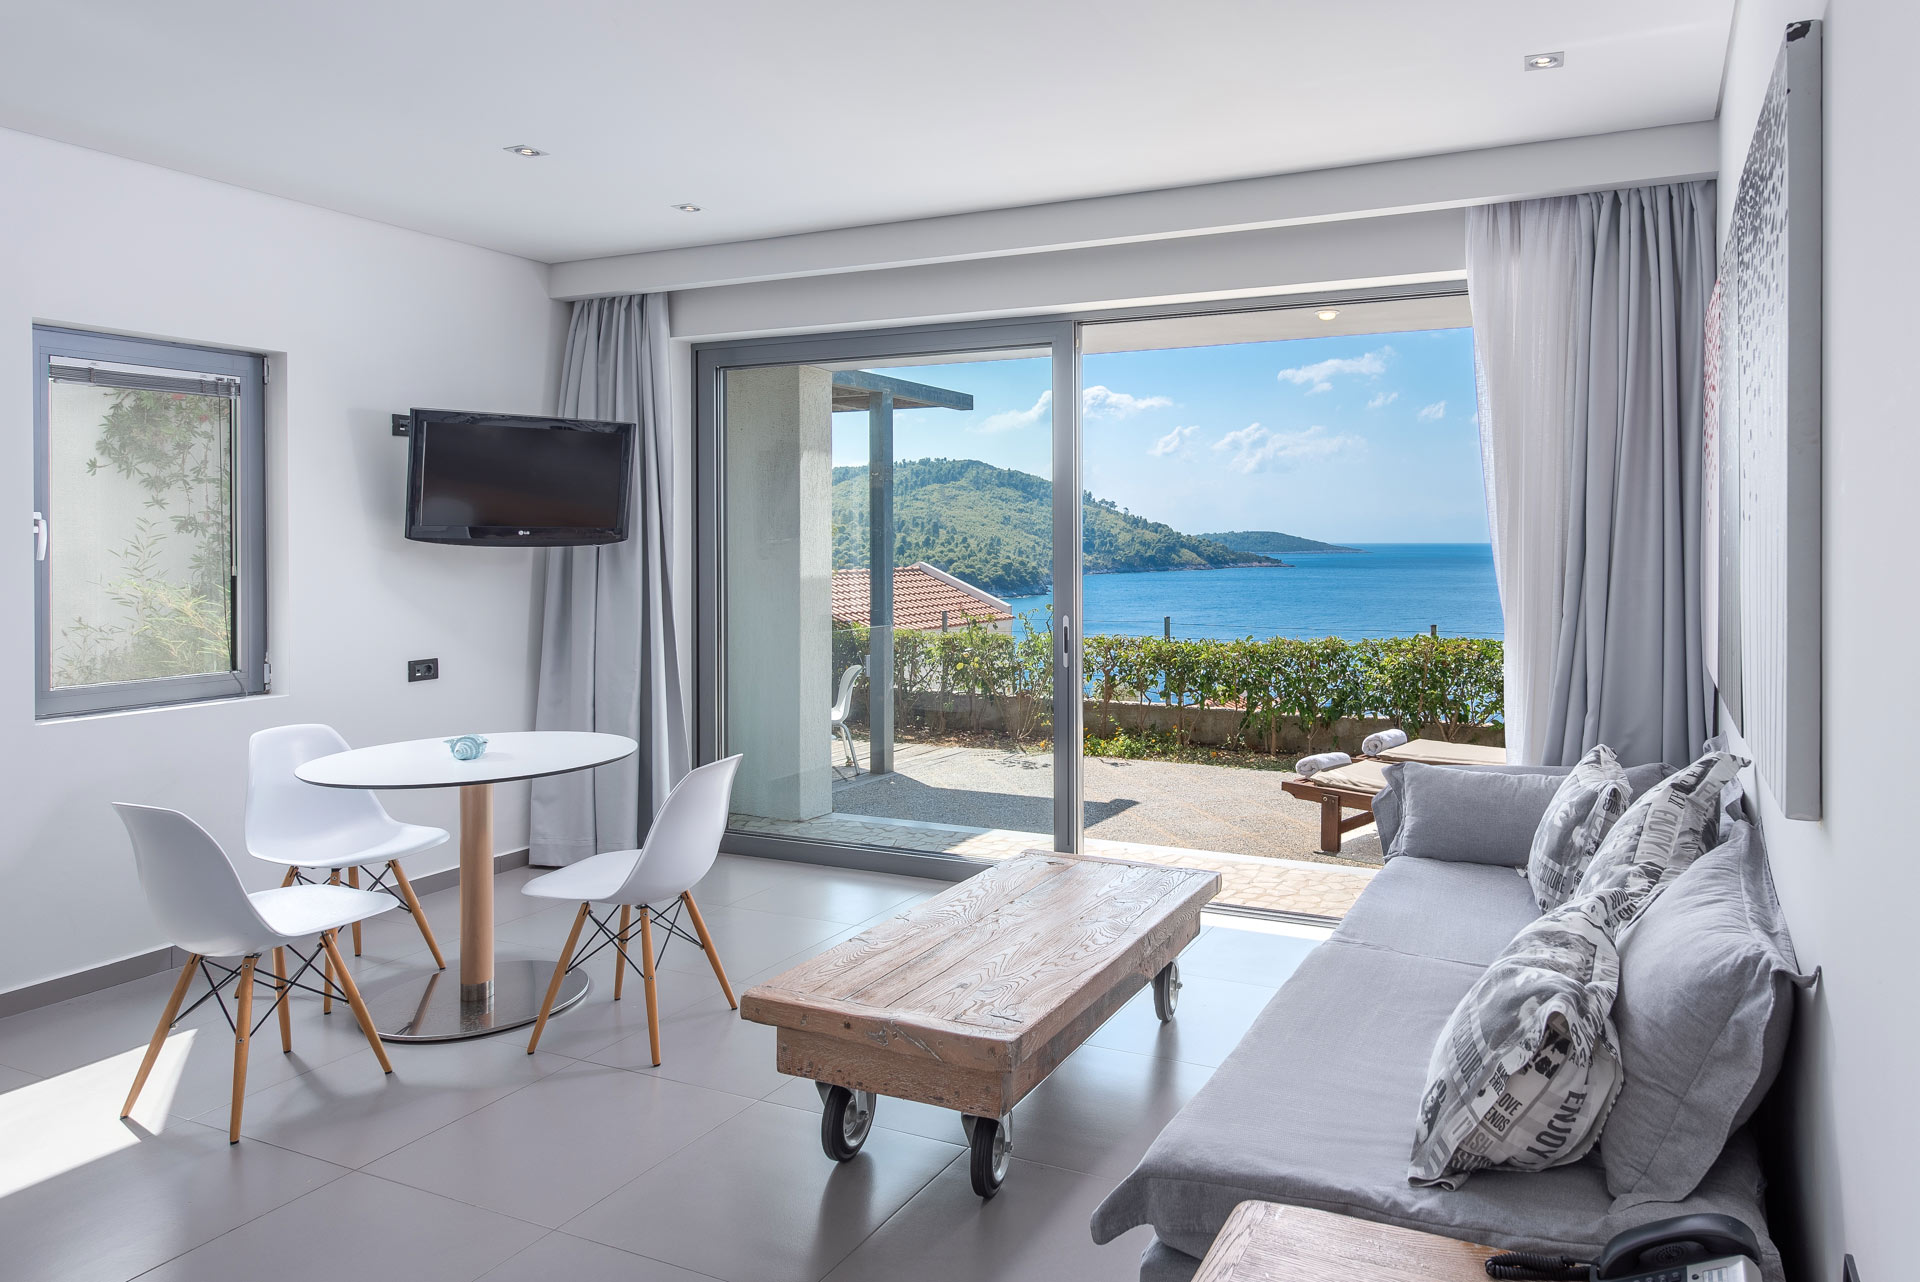 skopelos hotels adrina resort 1 beroom 2 level villa 744